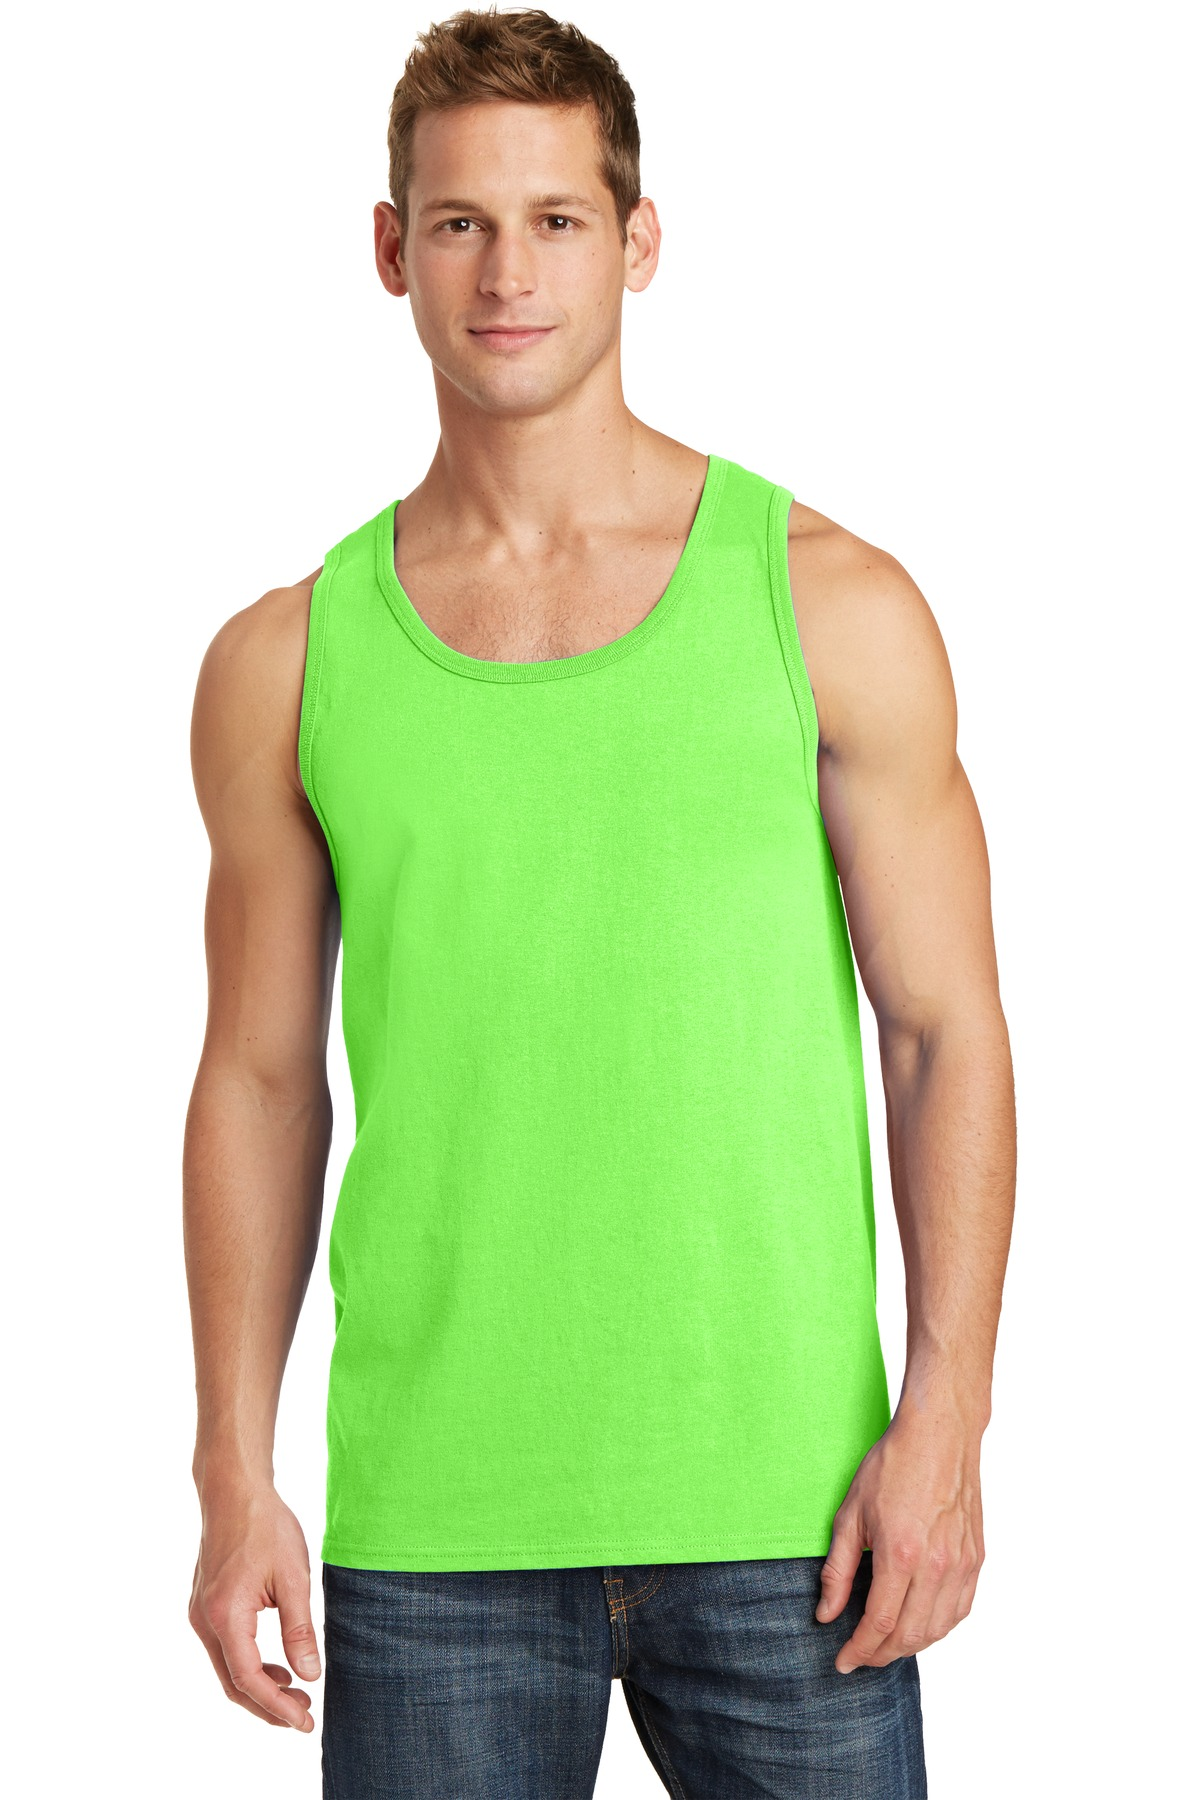 a5c0c74d058f0 Port   Company PC54TT - 5.4-Oz 100% Cotton Tank Top - Men s Tanks